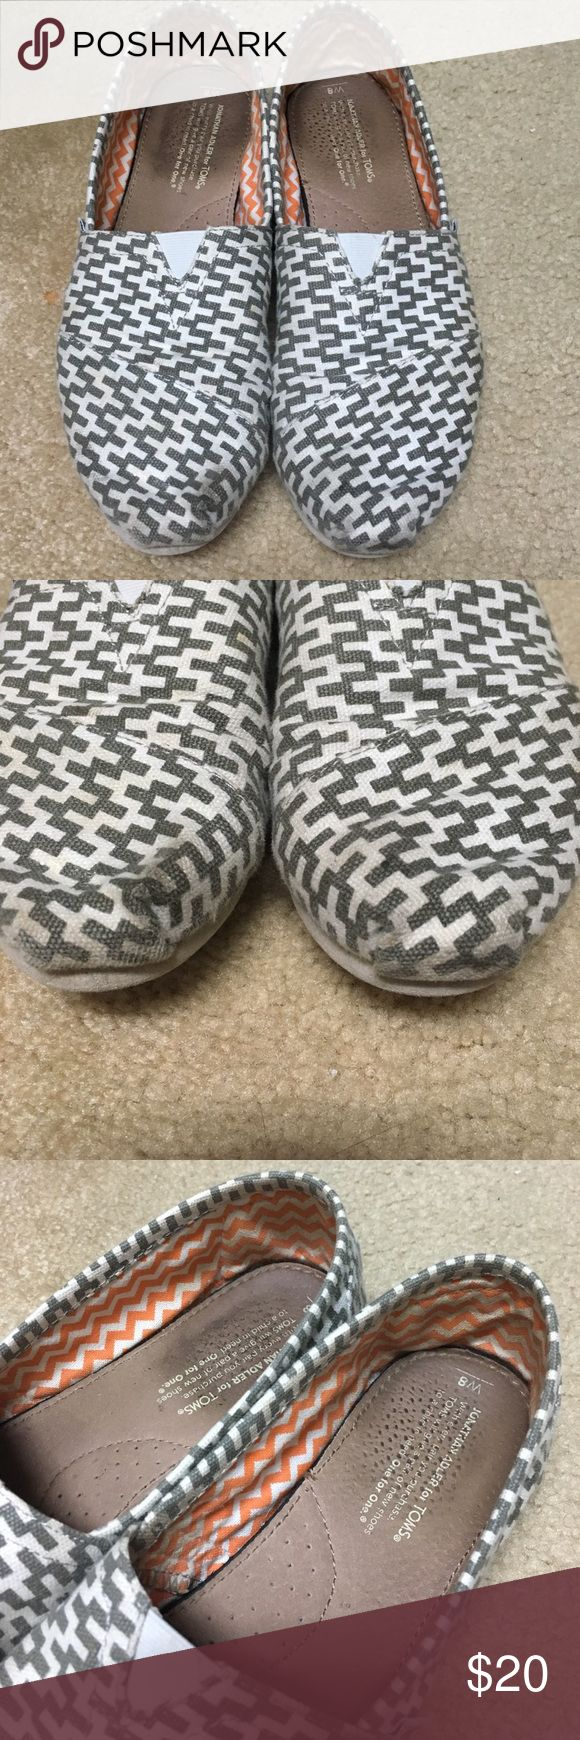 Toms canvas slip ons Gray and white chevron. Worn (some wear on toes but could be washed) but no damage/holes to fabric. Toms Shoes